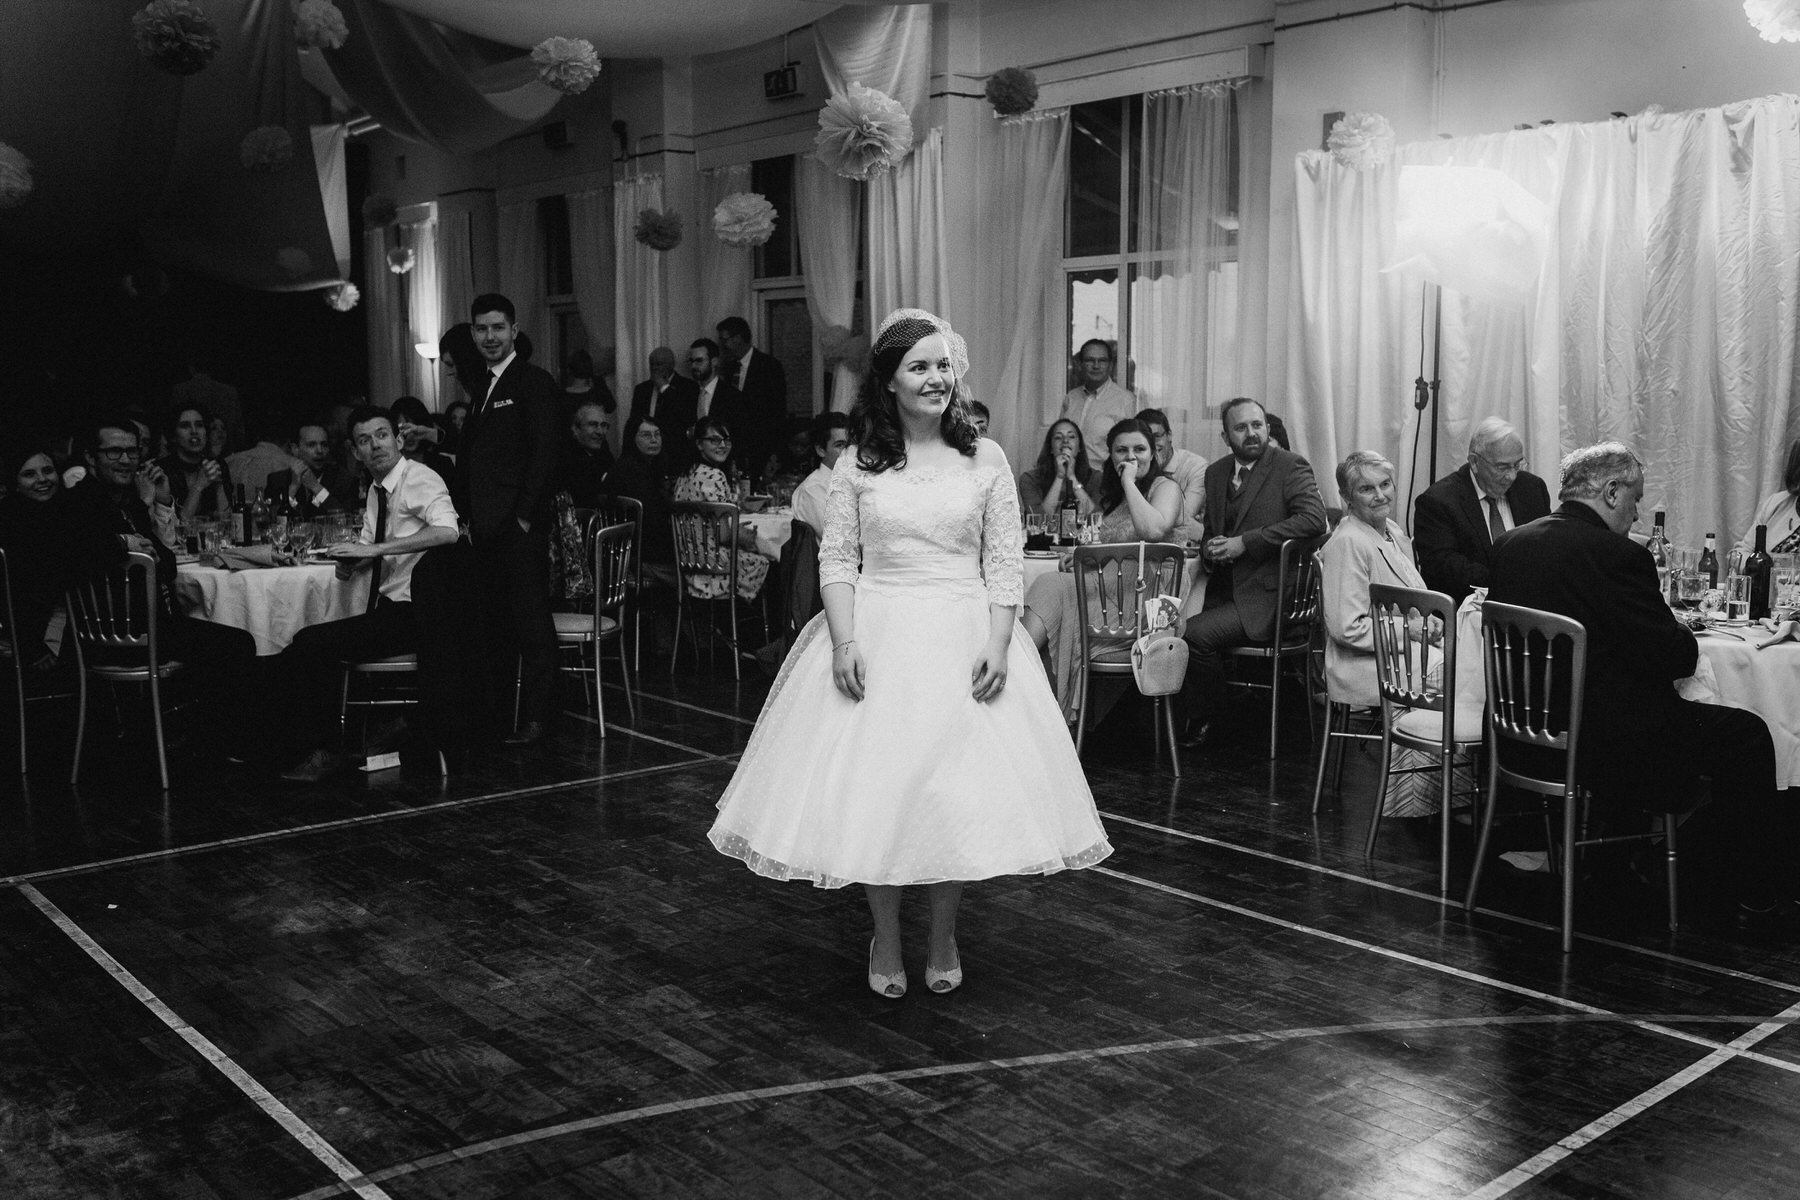 252 BW bride awaiting first dance school hall wedding London.jpg